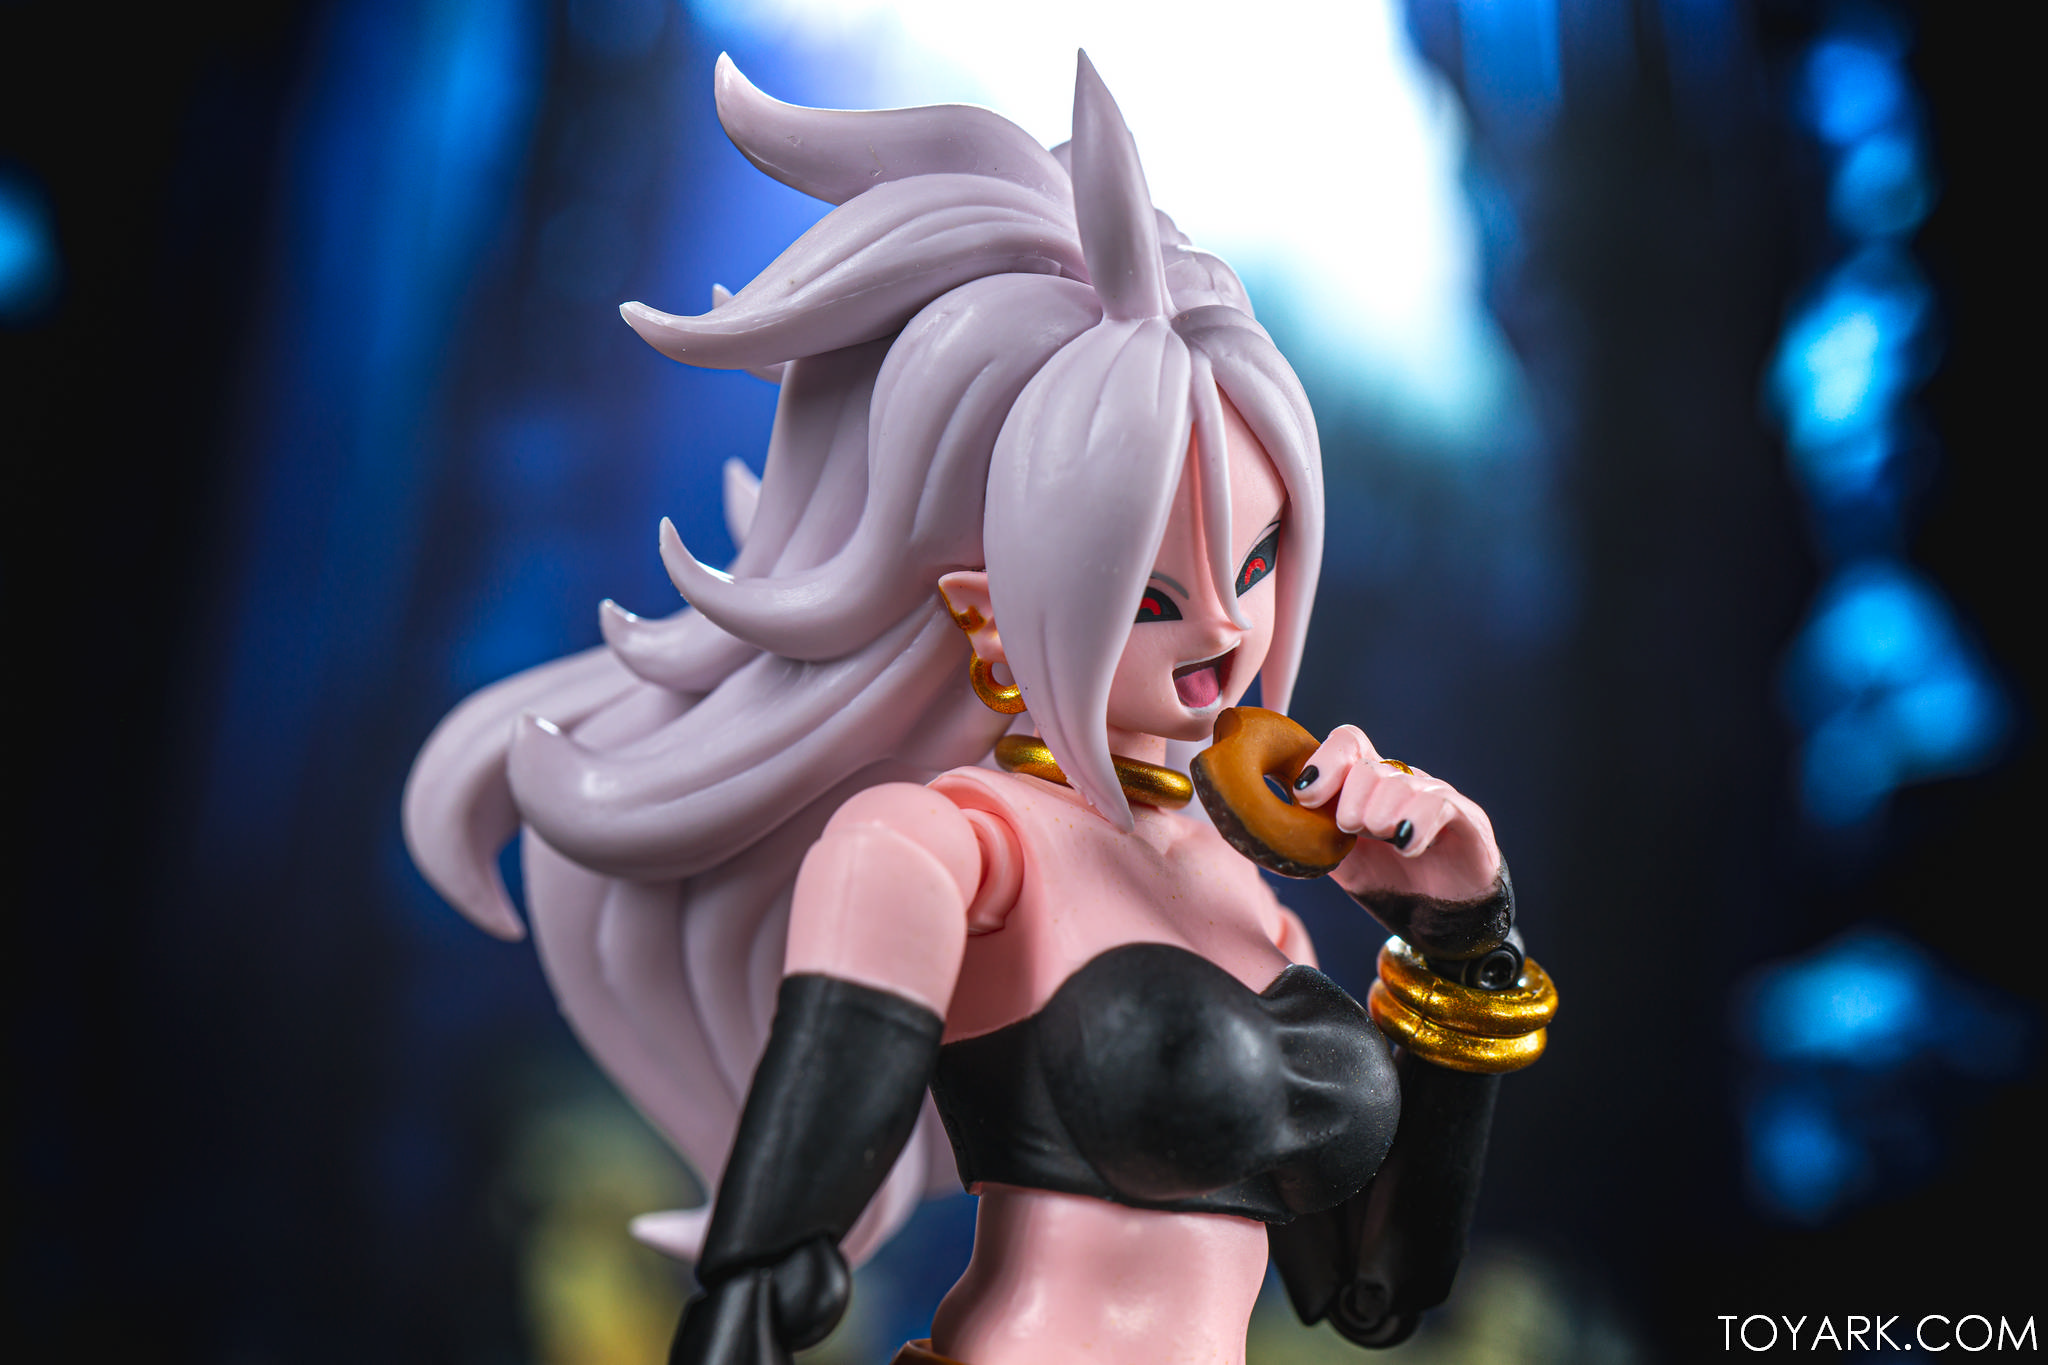 SHF Android 21 36